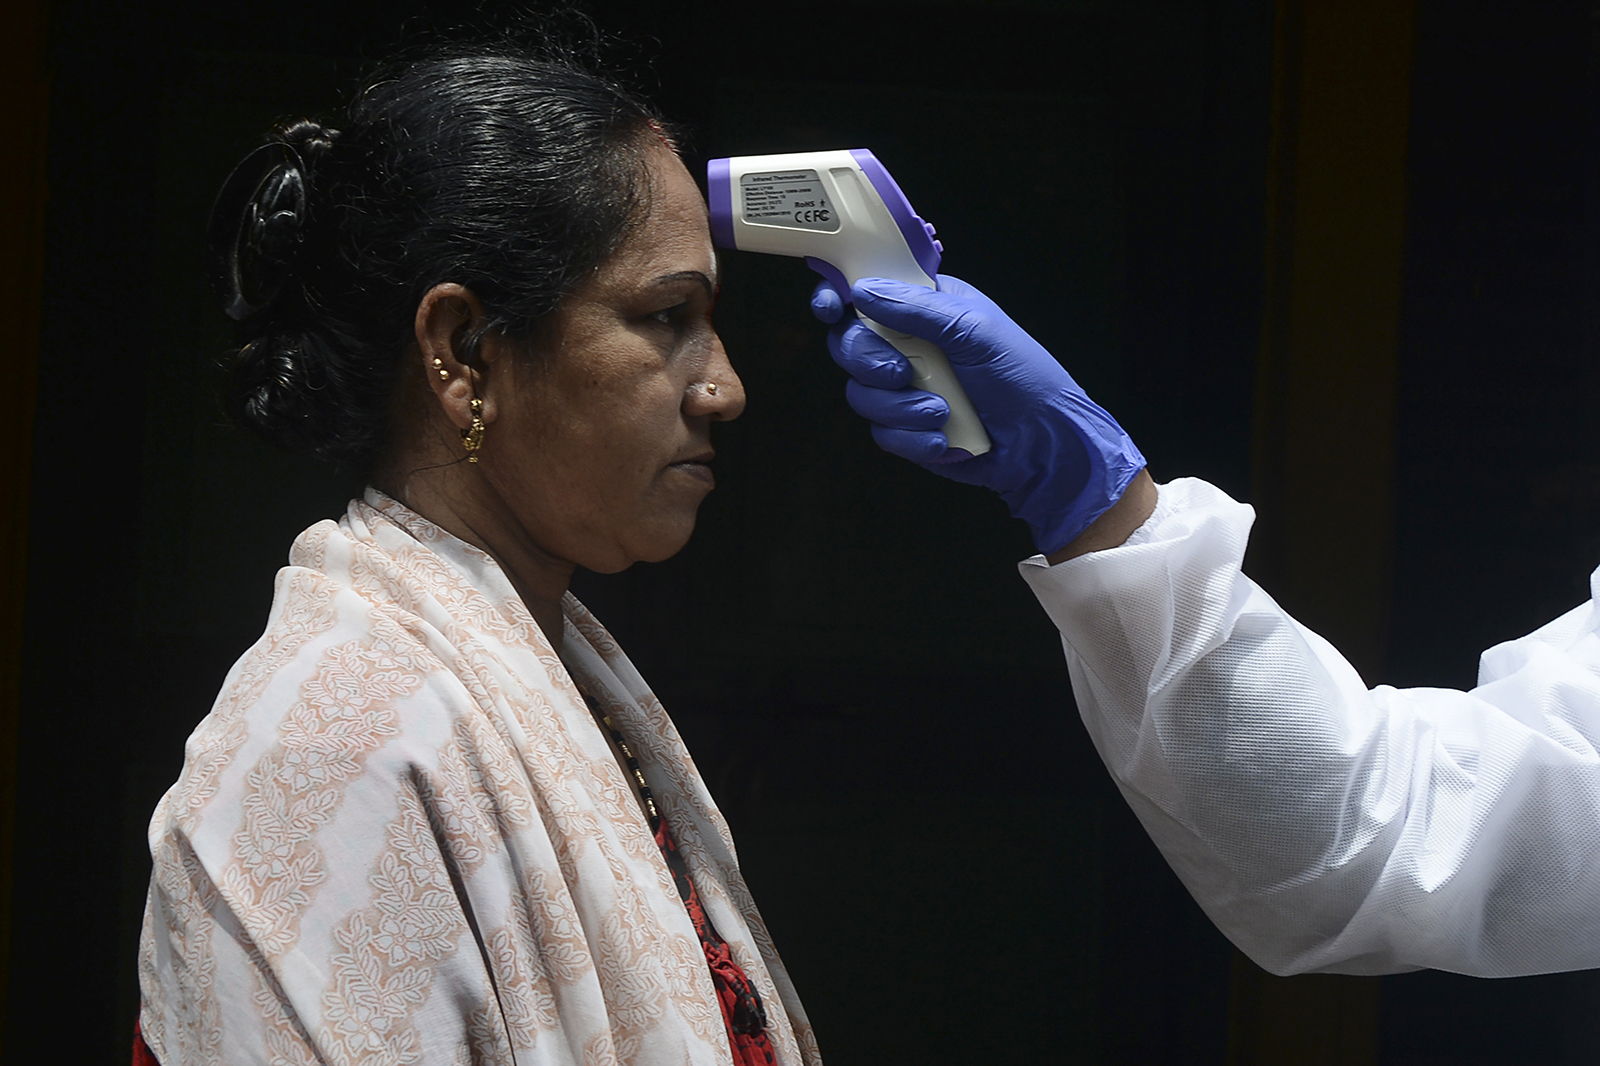 A doctor checks a woman's temperature at her residence during a government-imposed lockdown in Chennai, India, on June 29.